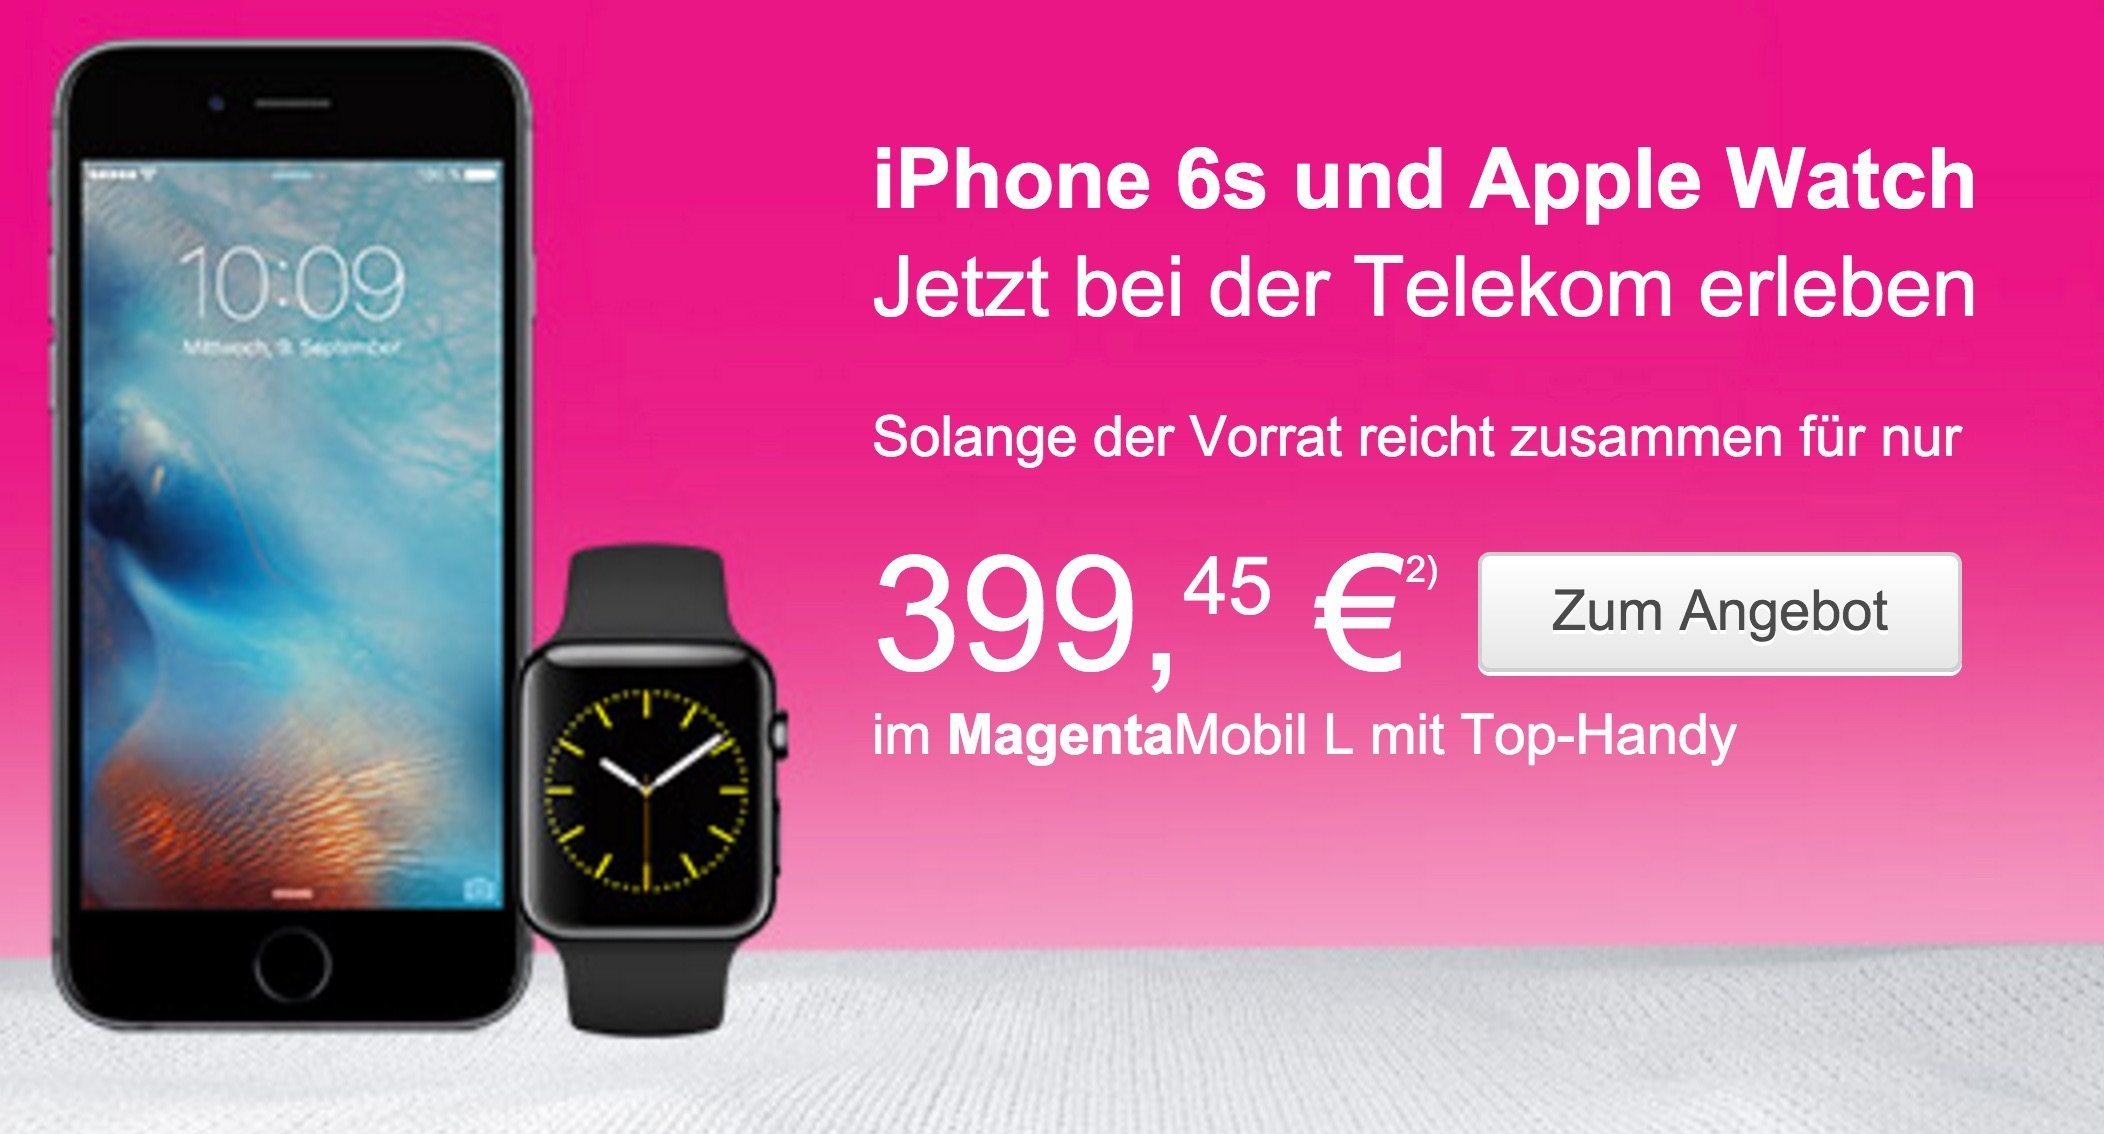 Apple Bundle der Extraklasse: iPhone 6s und Apple Watch bei Telekom 7